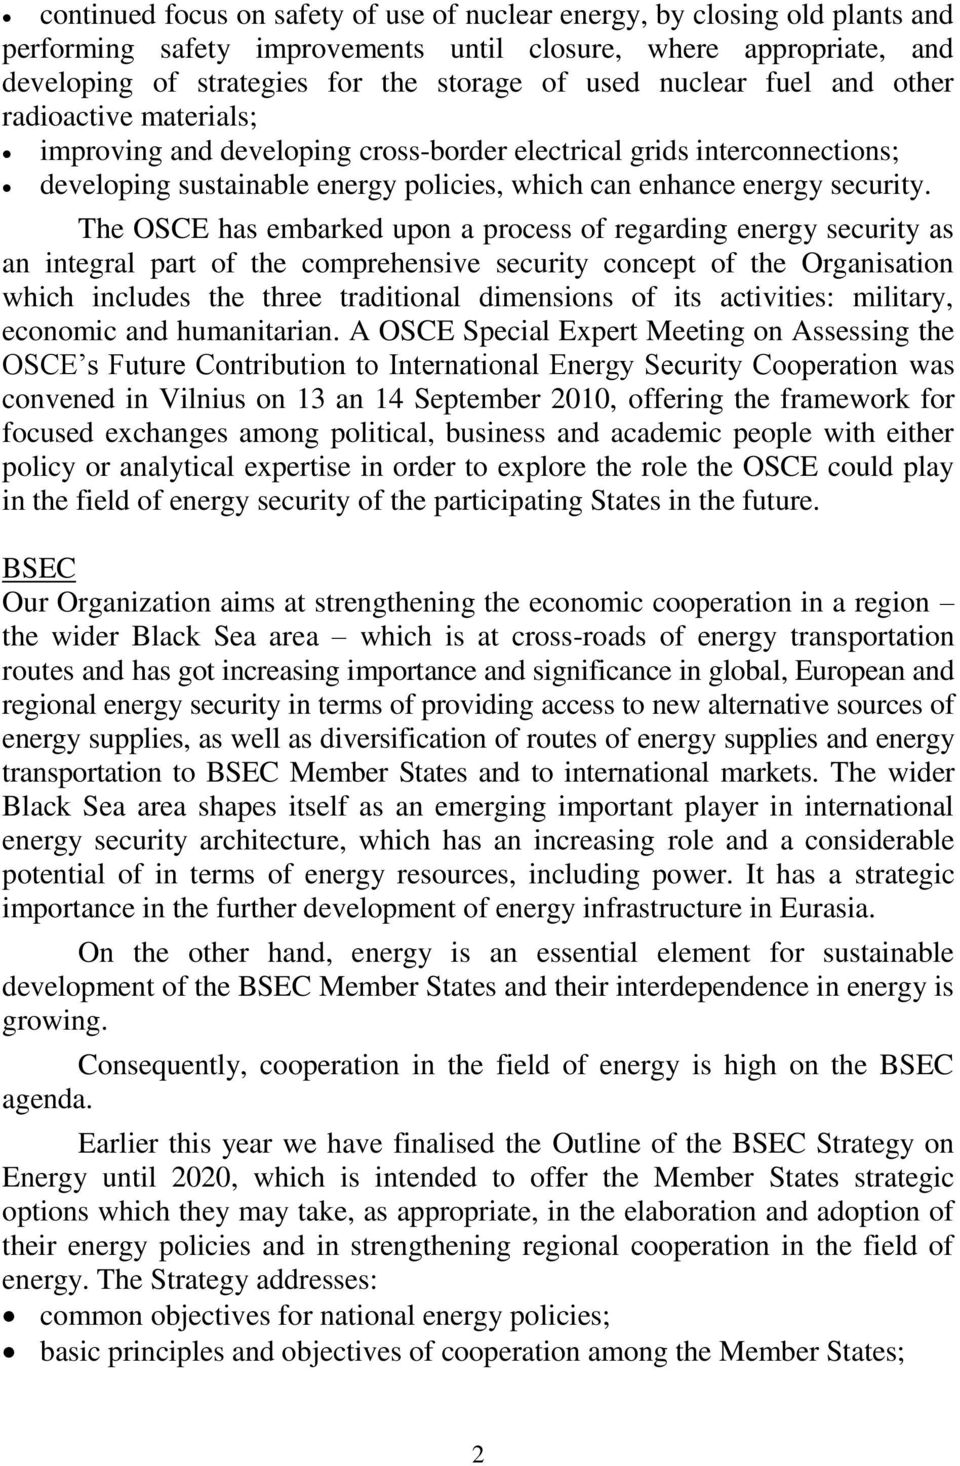 The OSCE has embarked upon a process of regarding energy security as an integral part of the comprehensive security concept of the Organisation which includes the three traditional dimensions of its